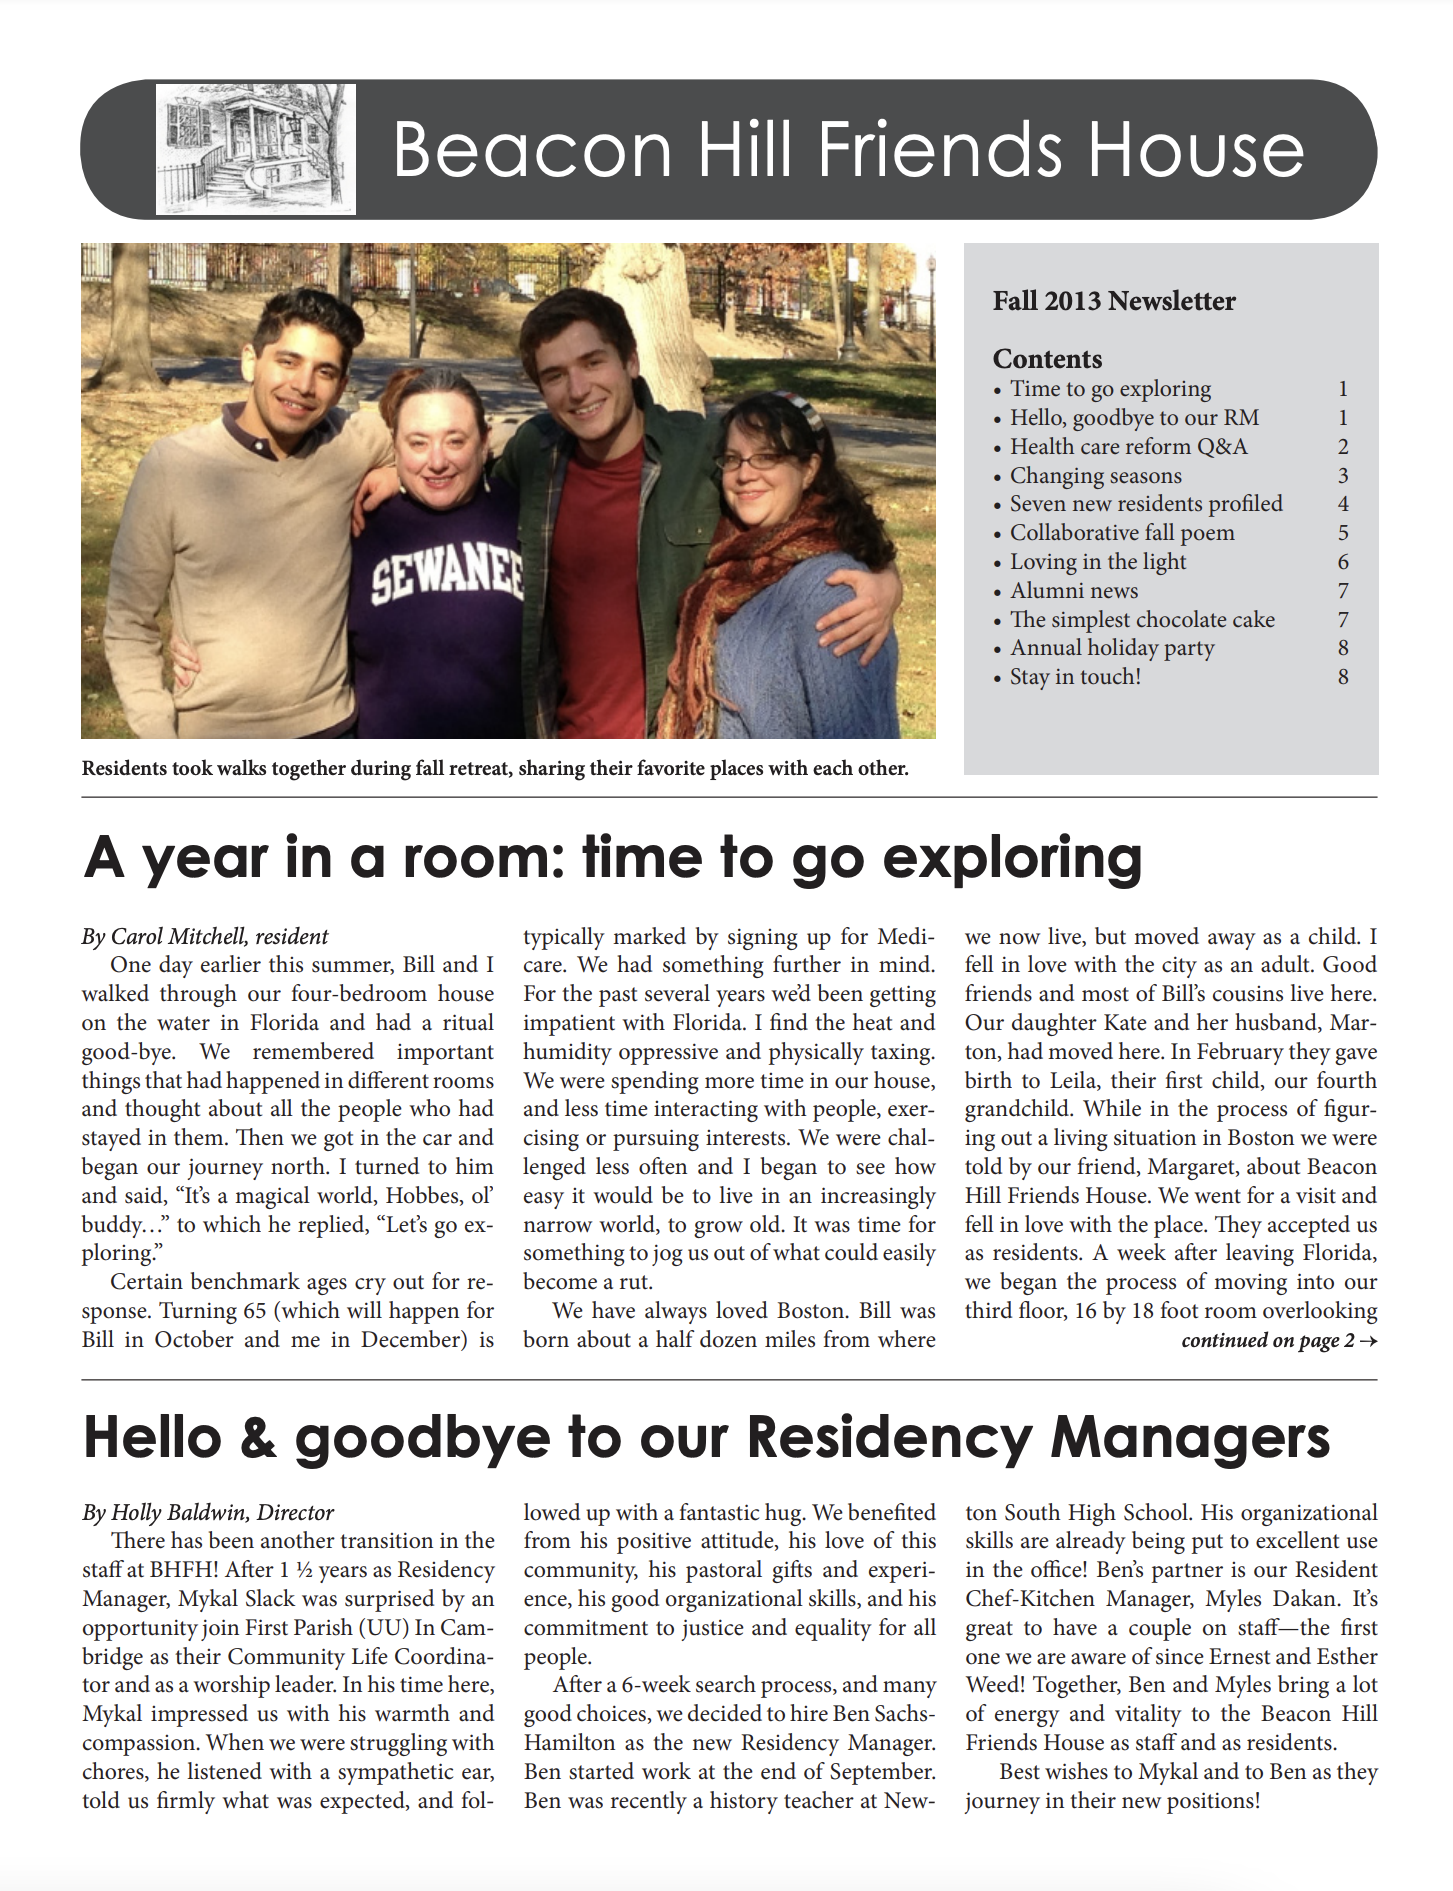 First page of fall/winter 2013 newsletter